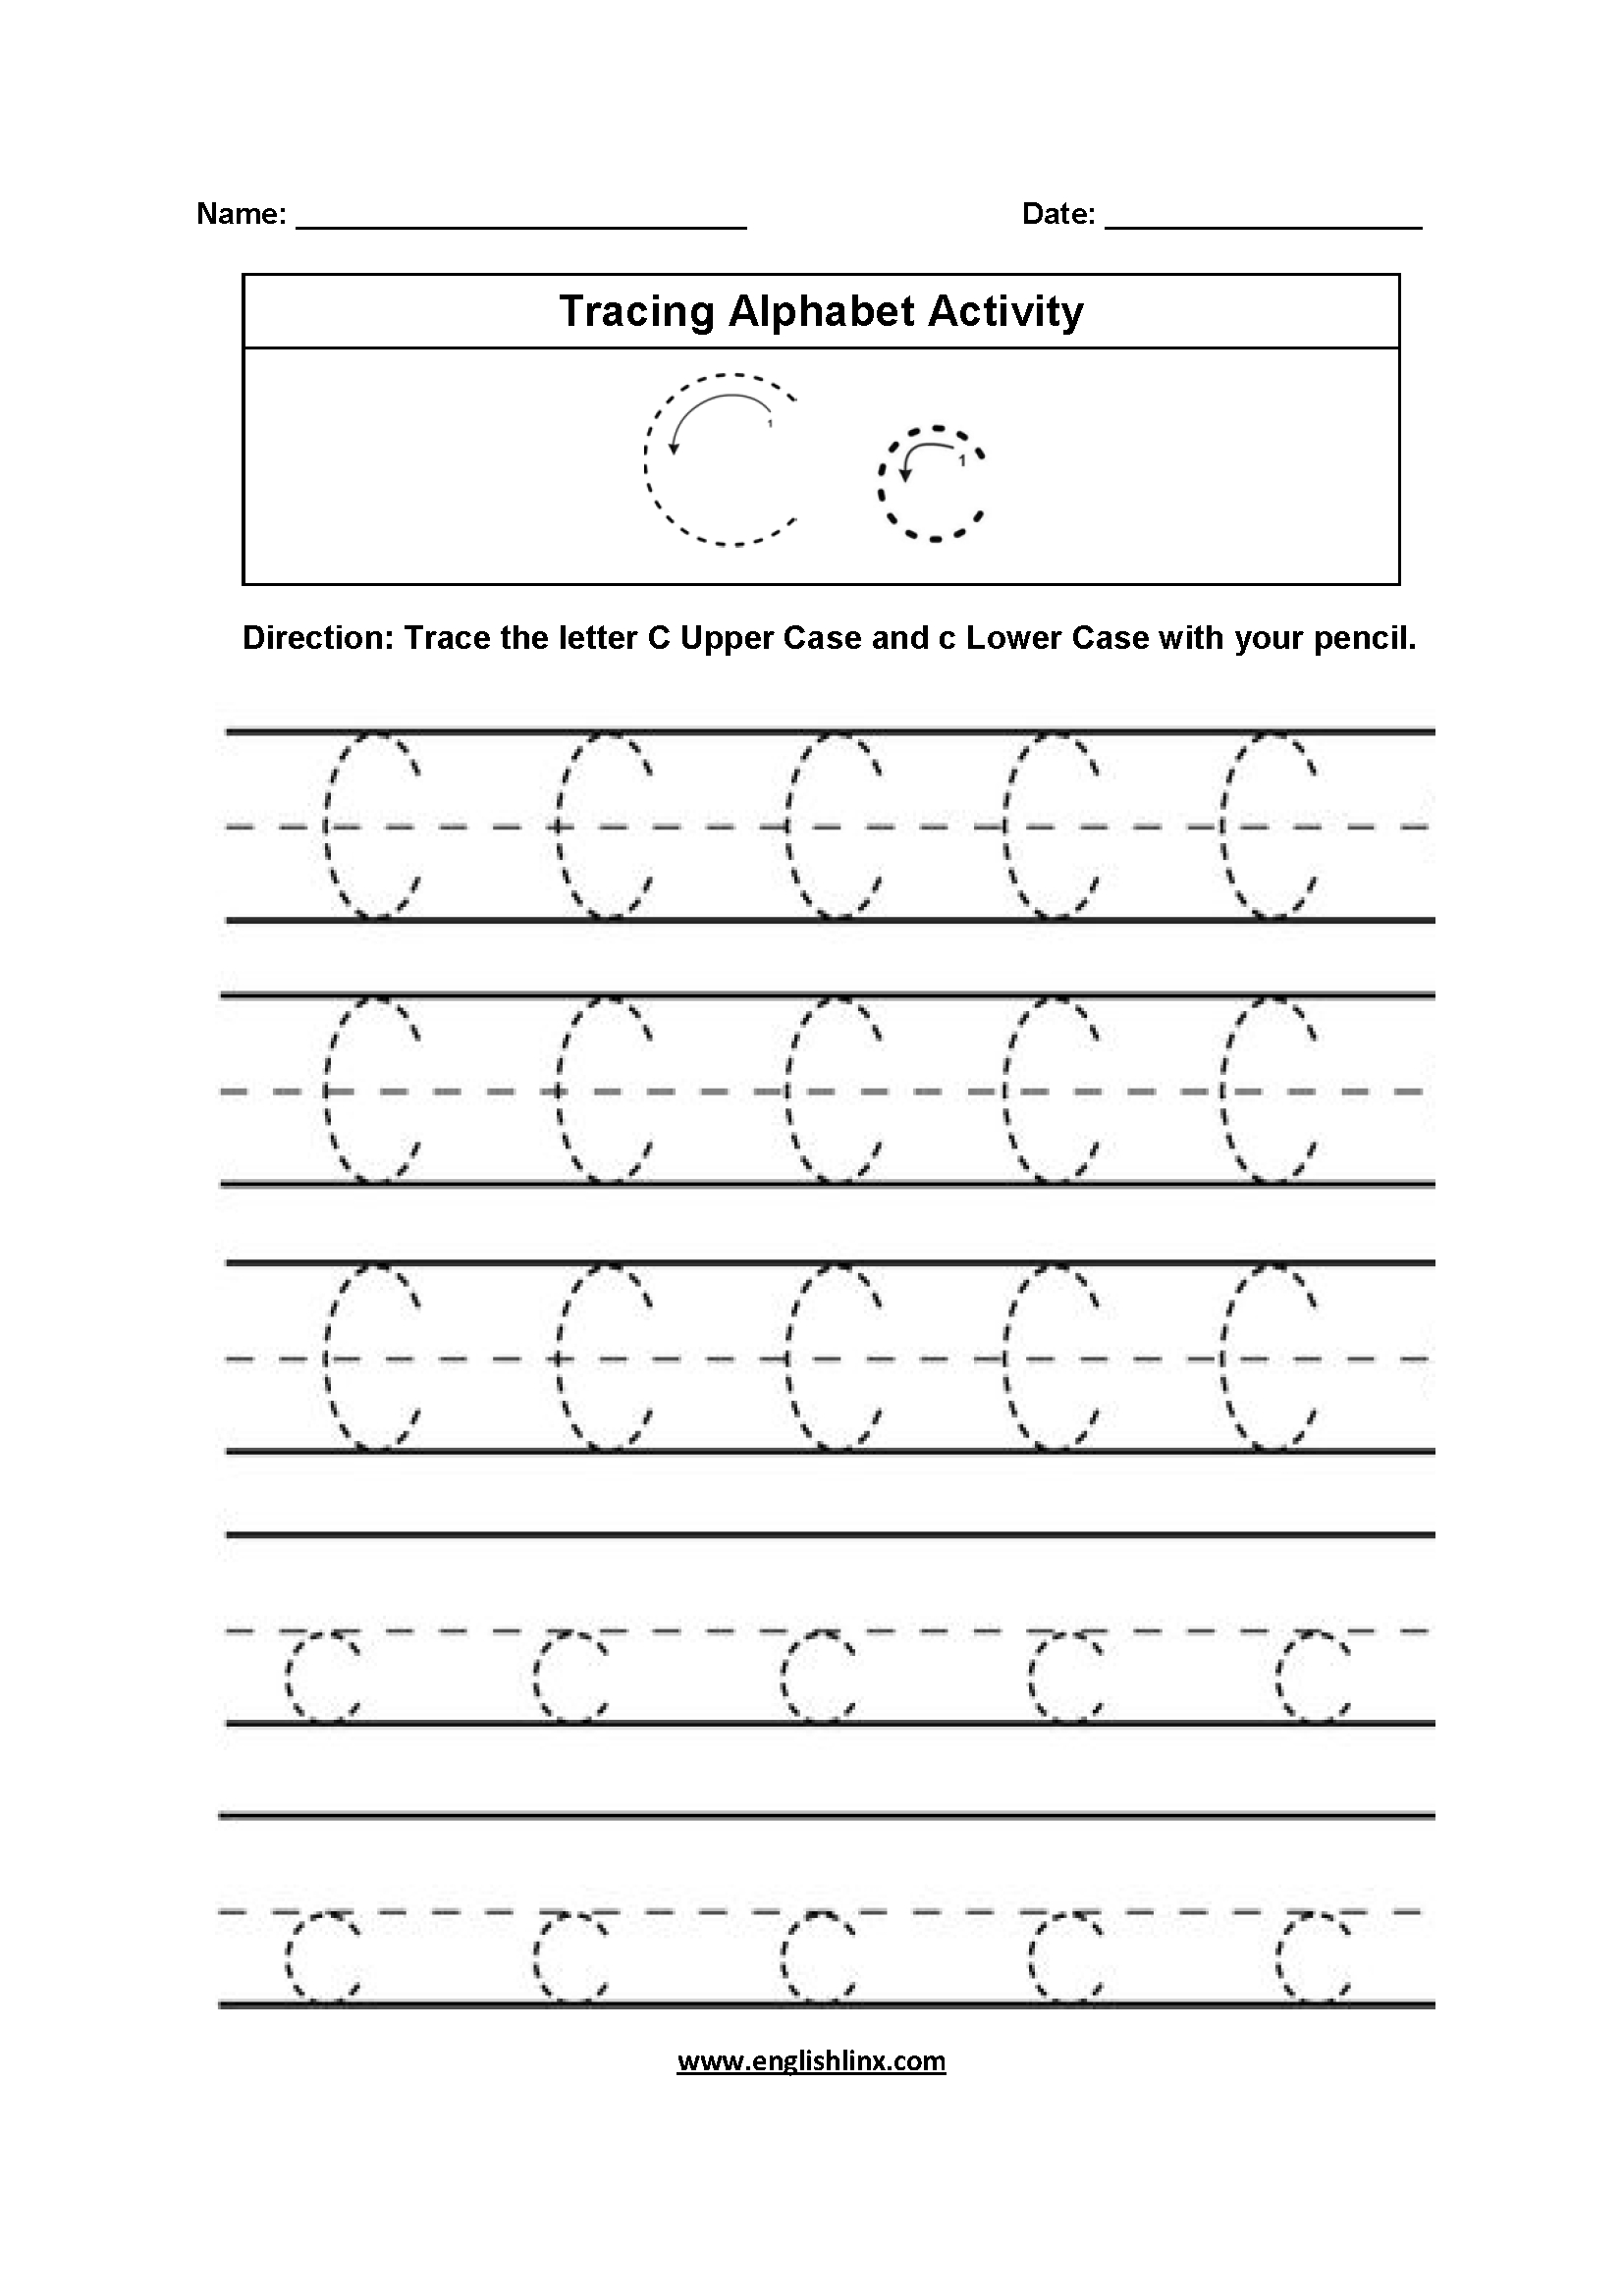 Alphabet Worksheets | Tracing Alphabet Worksheets regarding A-Z Tracing Letters Worksheets